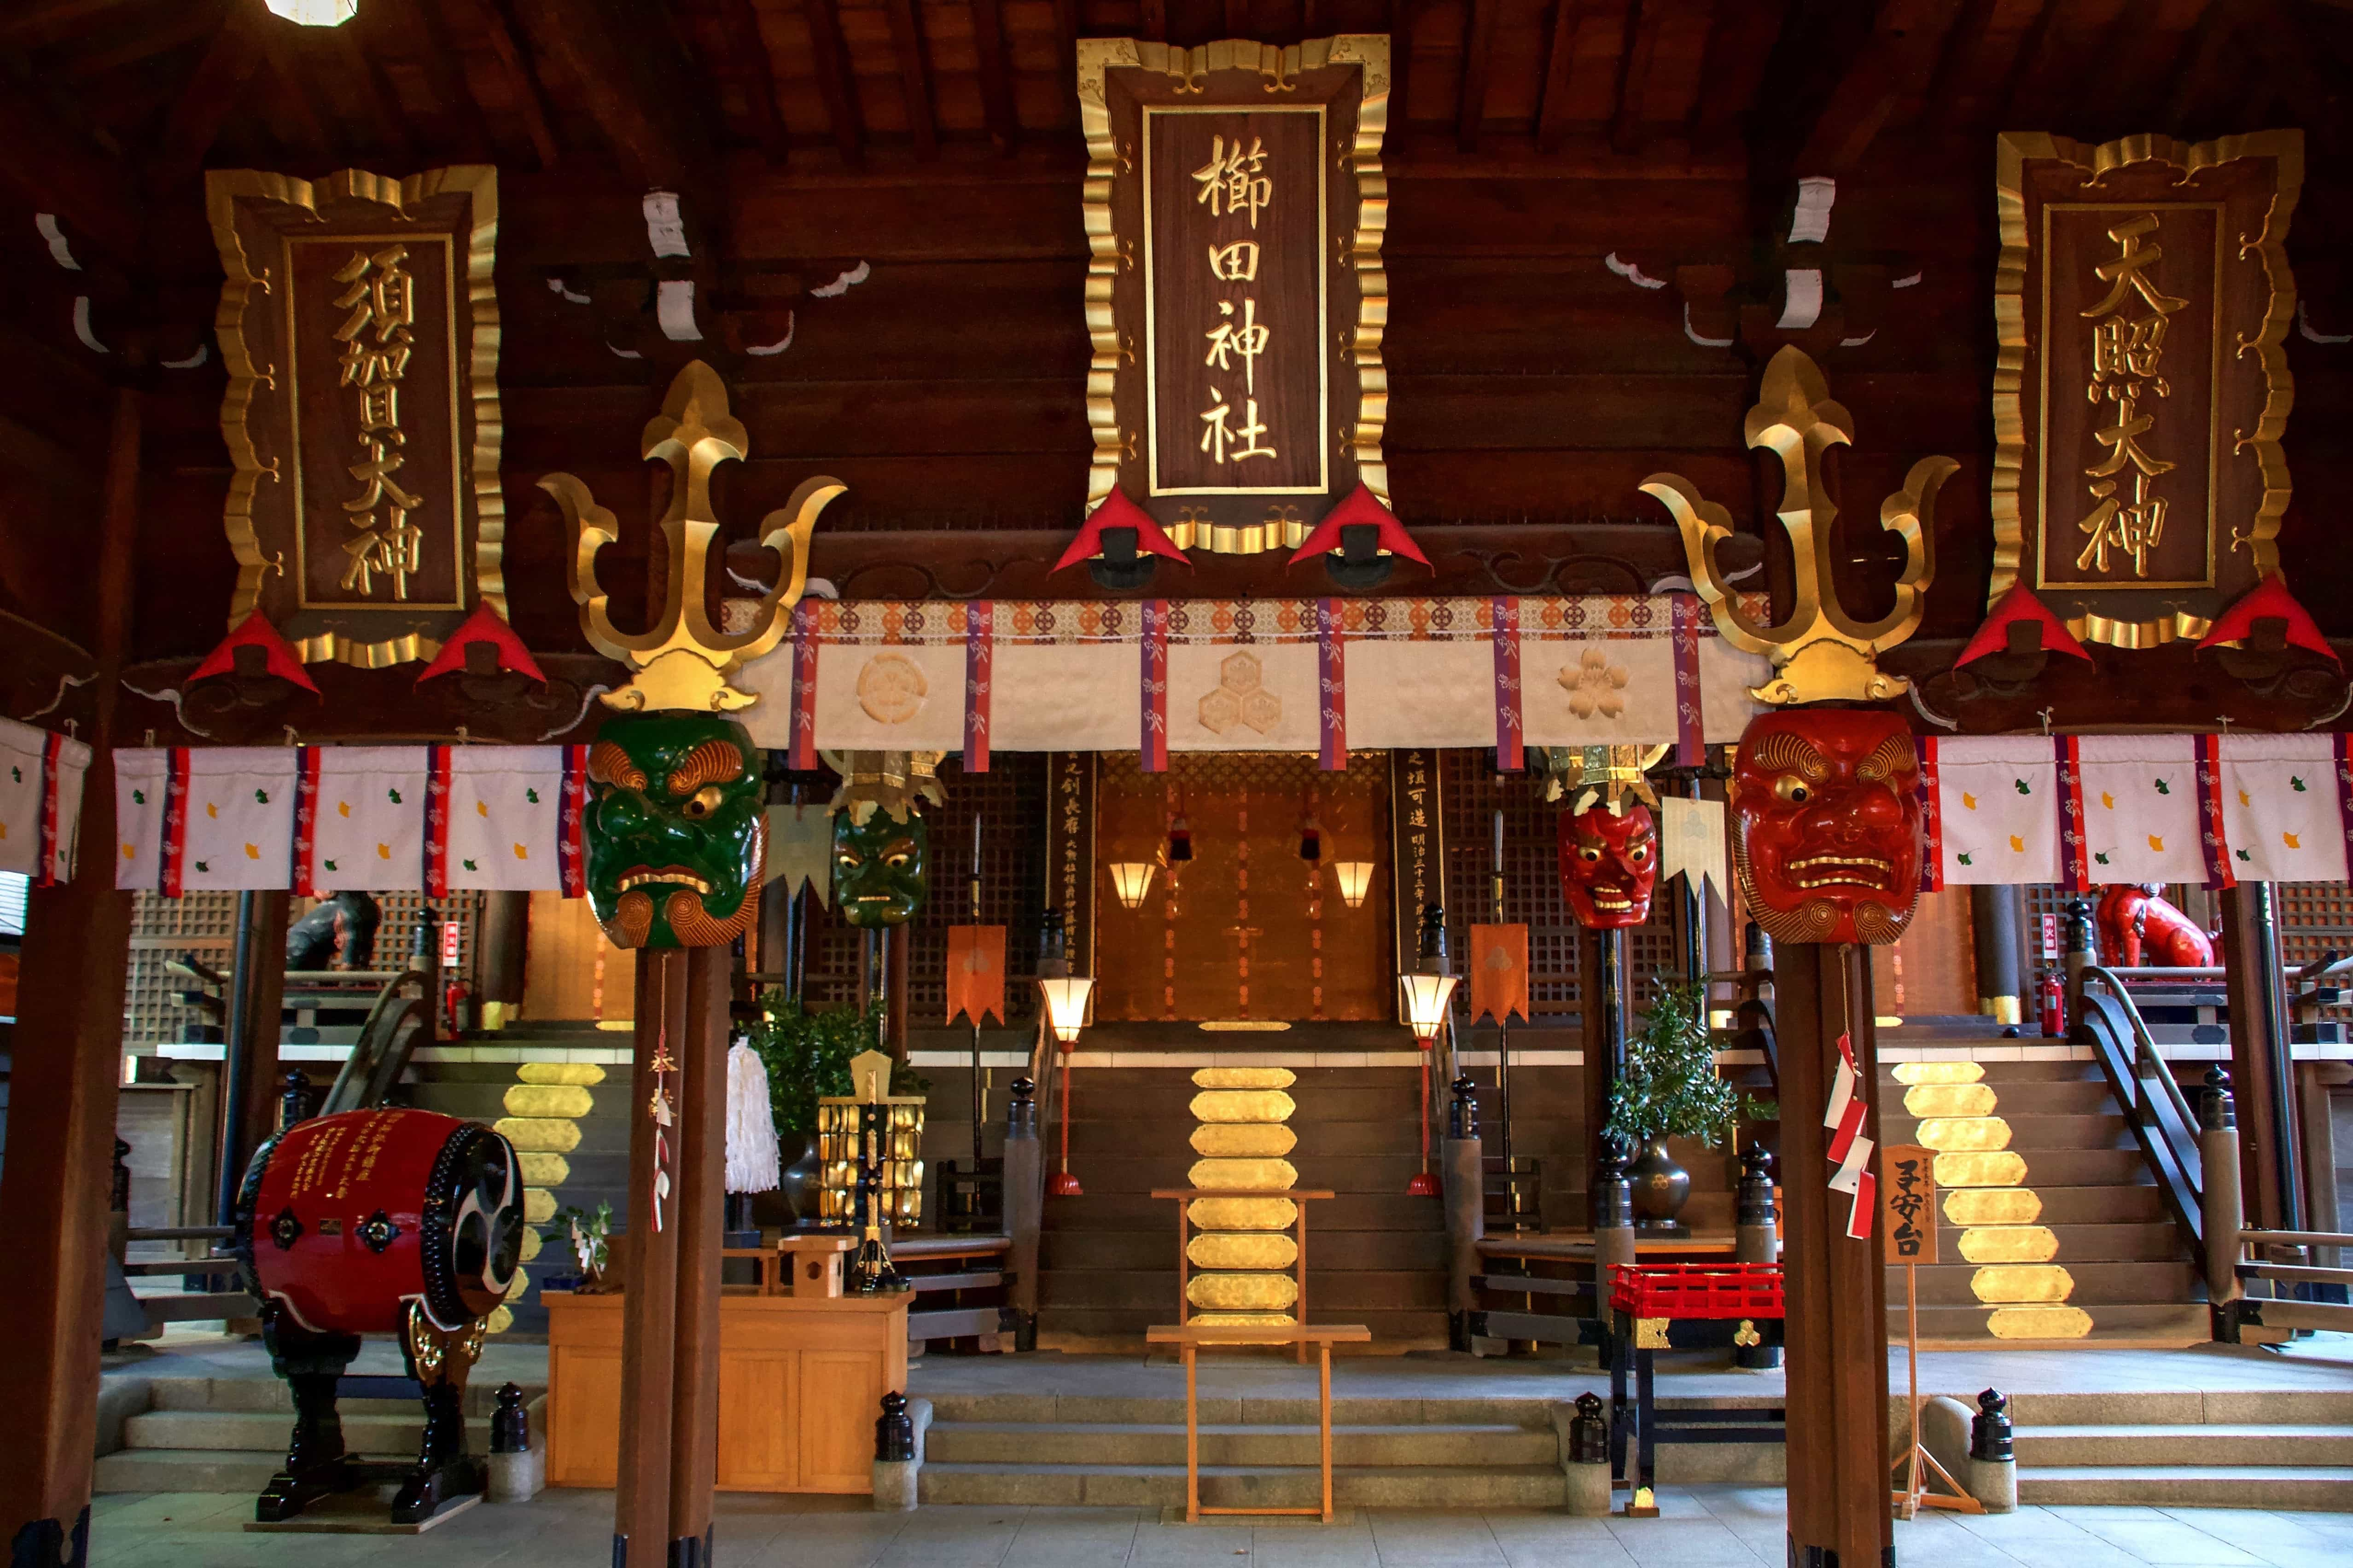 Traveling to Fukuoka? Here are 5 things you can't miss! From traditional temples to endless flower gardens and great food, there's something for everyone. Read more at www.thefivefoottraveler.com